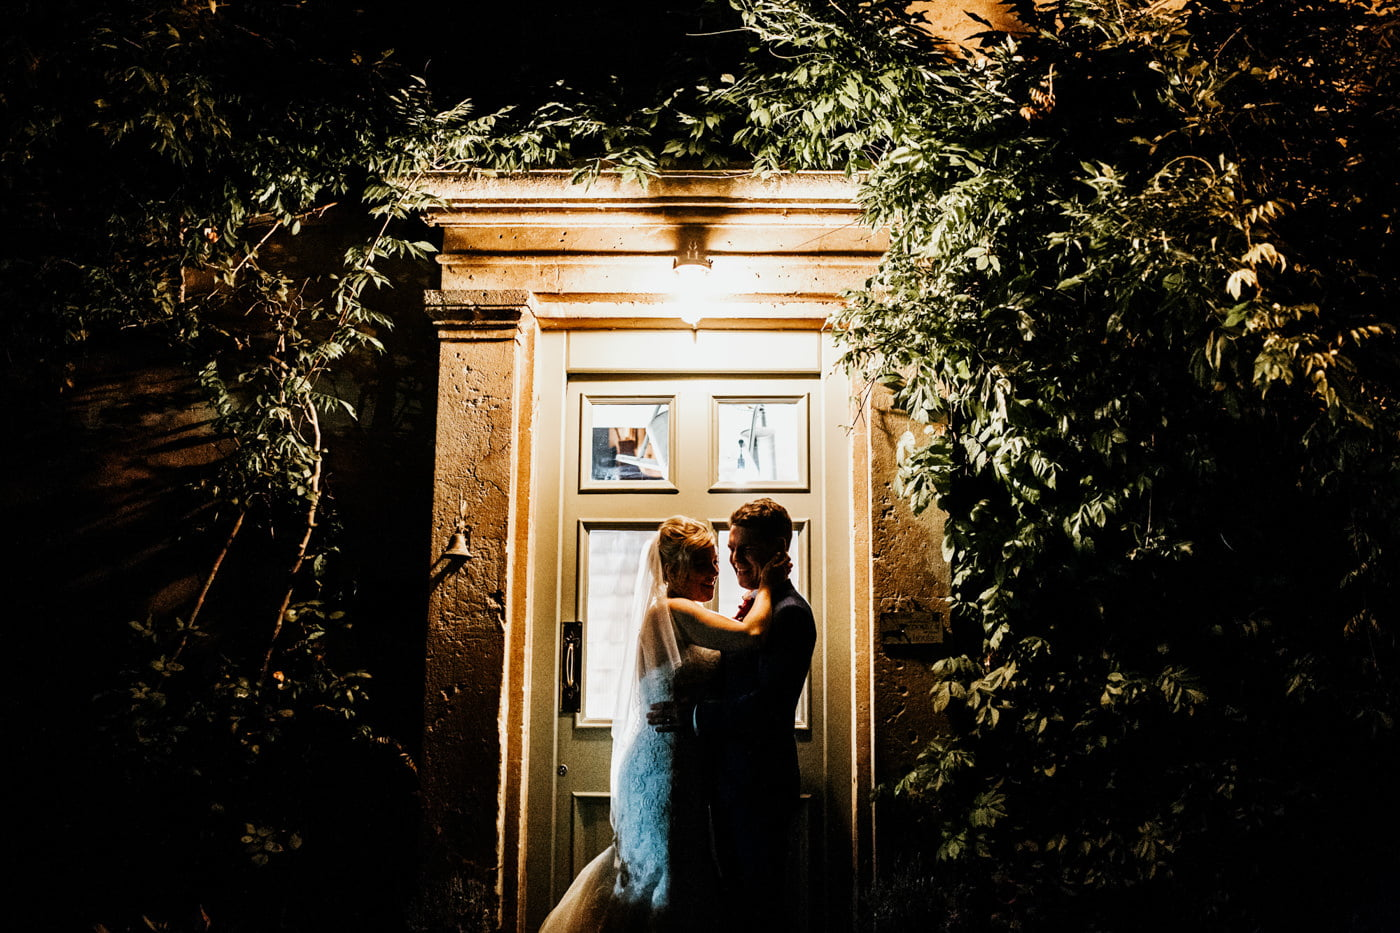 Natalie and Rob, Widbrook Grange, Wiltshire 61